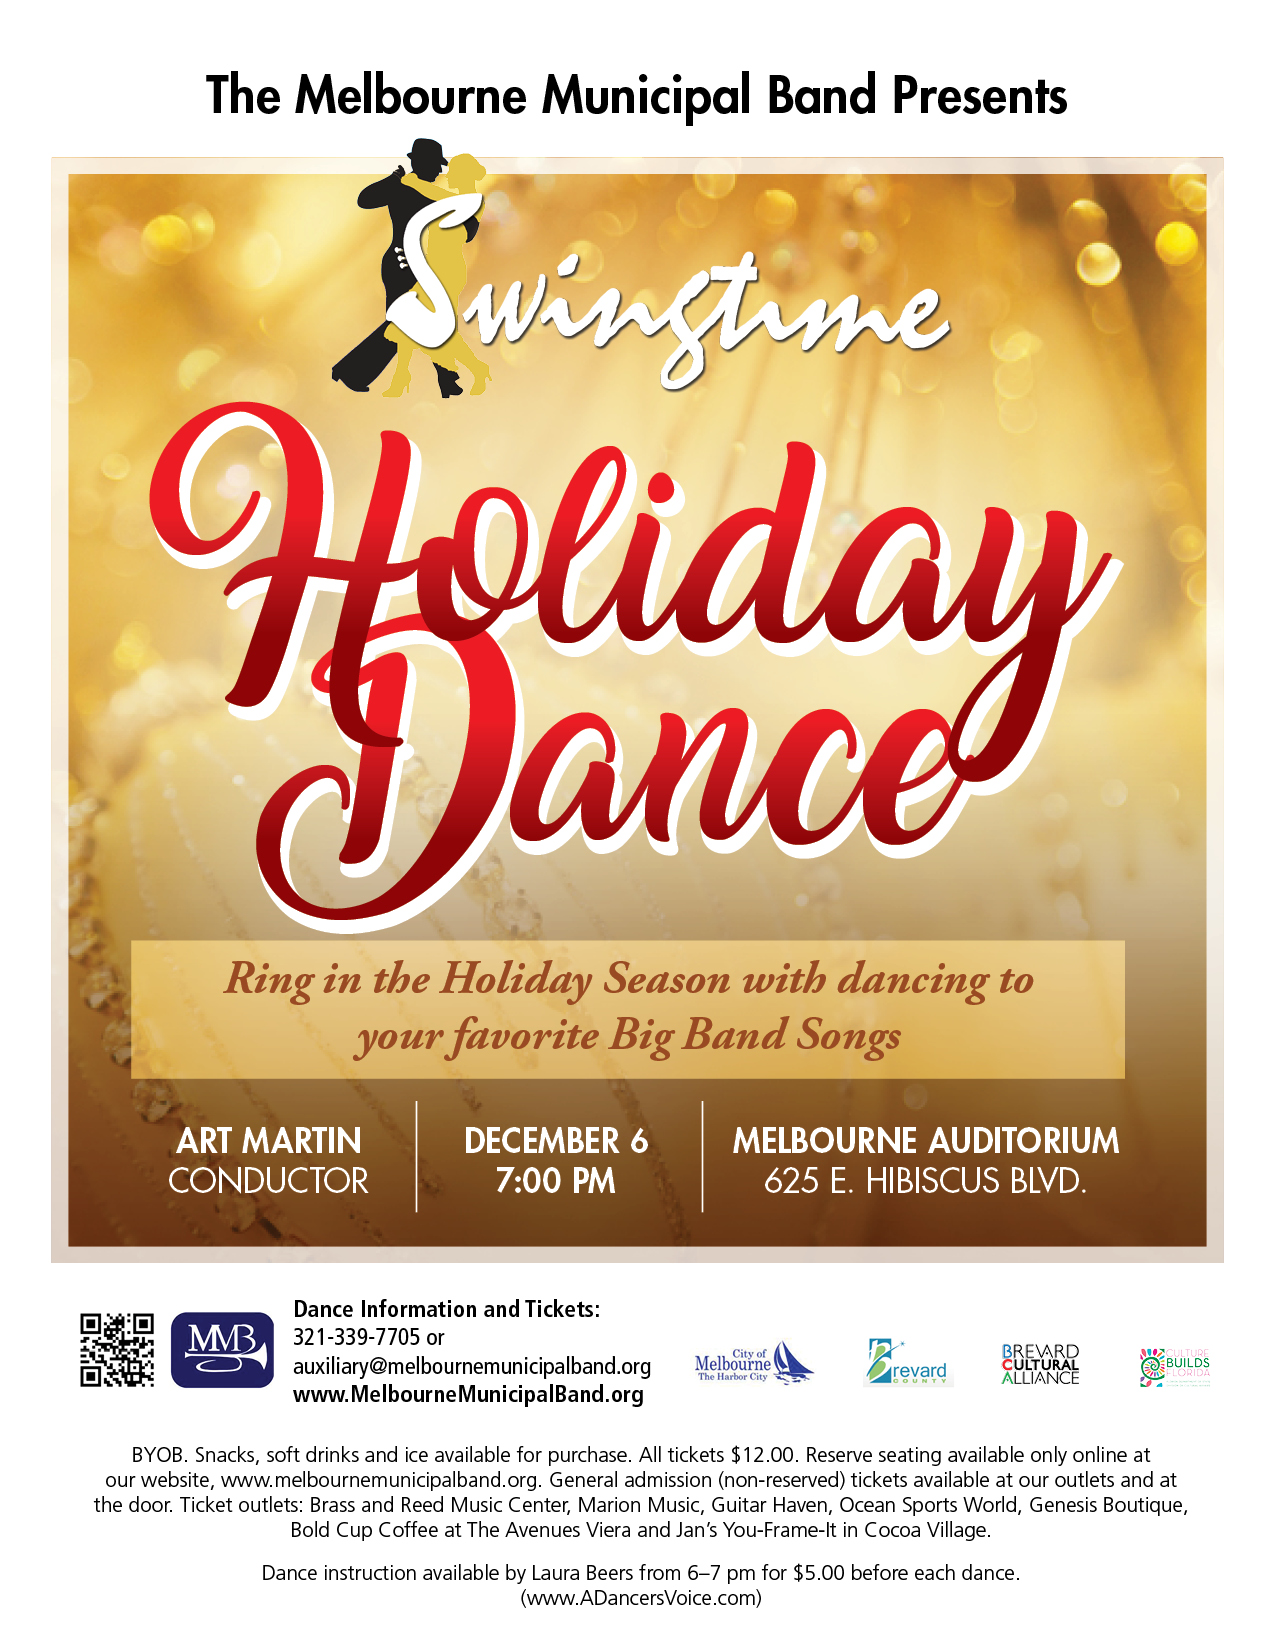 Swingtime Holiday Dance presented by The Melbourne Municipal Band